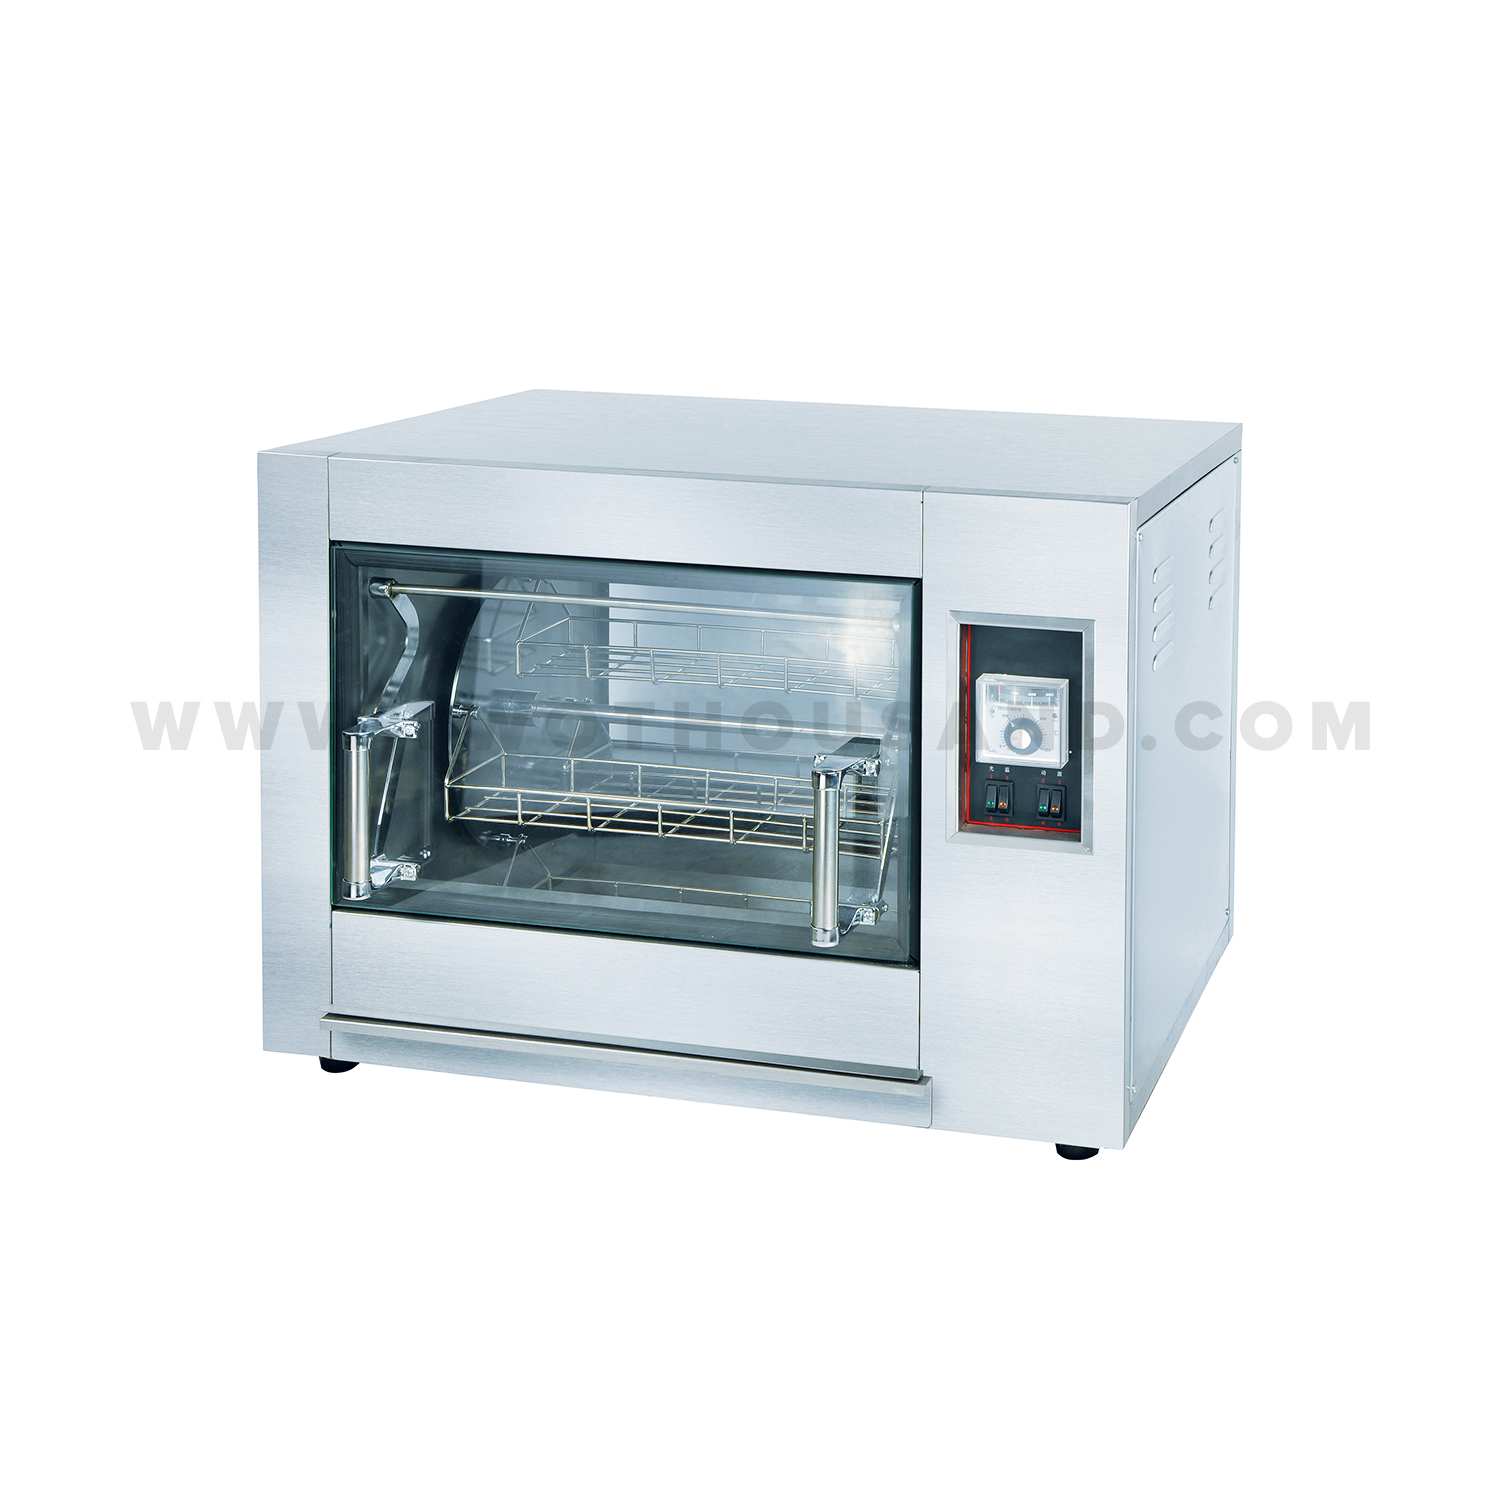 Countertop Rotisserie Ovens L 810mm Countertop Electric Rotary Chicken Rotisserie Oven